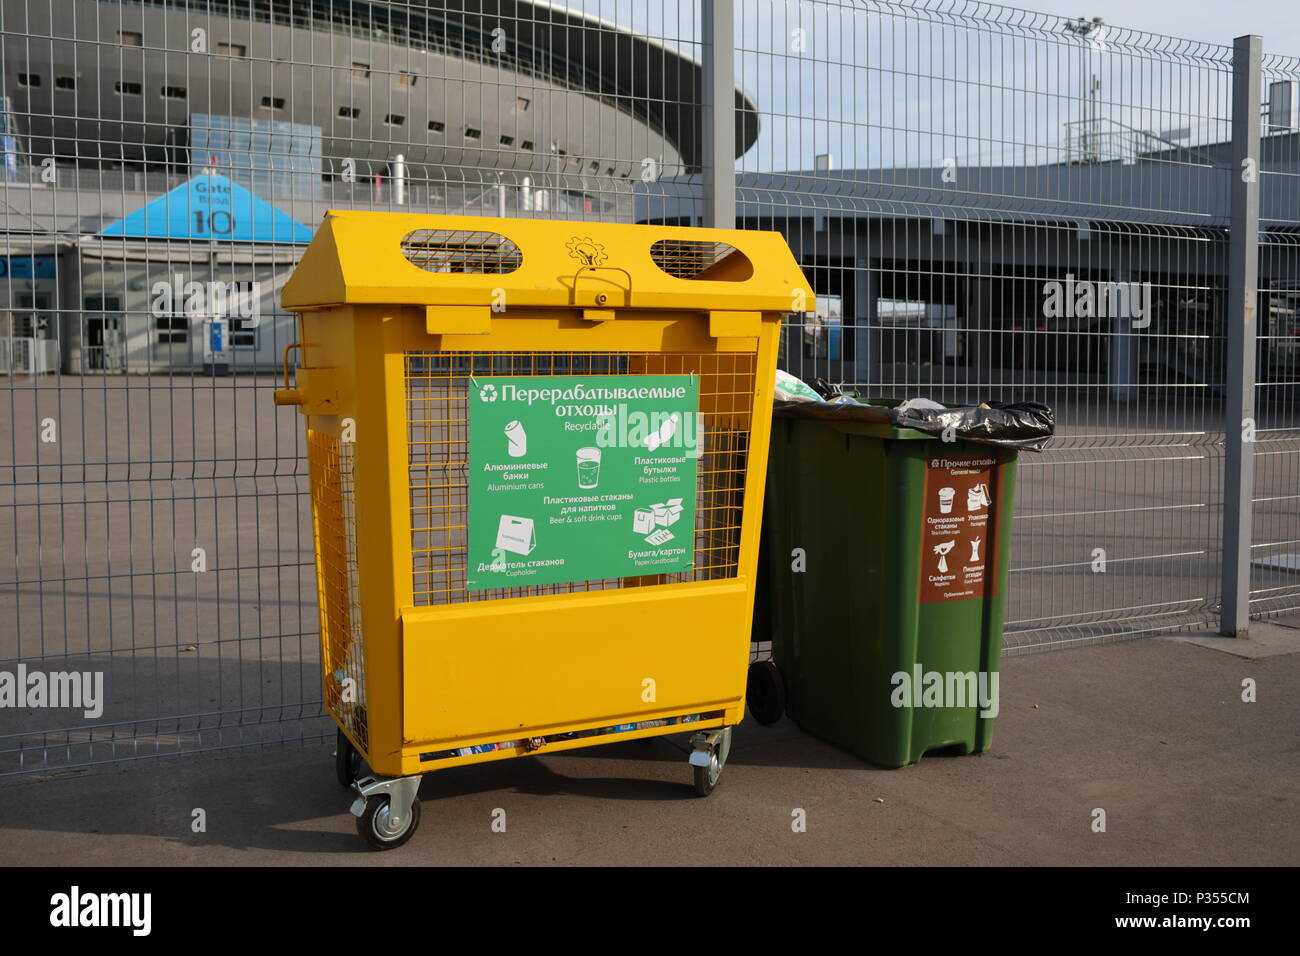 St. Petersburg, Russia - June 16, 2018: Recycle bins at Saint Petersburg stadium during FIFA World Cup Russia 2018. 164 containers was set by FIFA rec - Stock Image